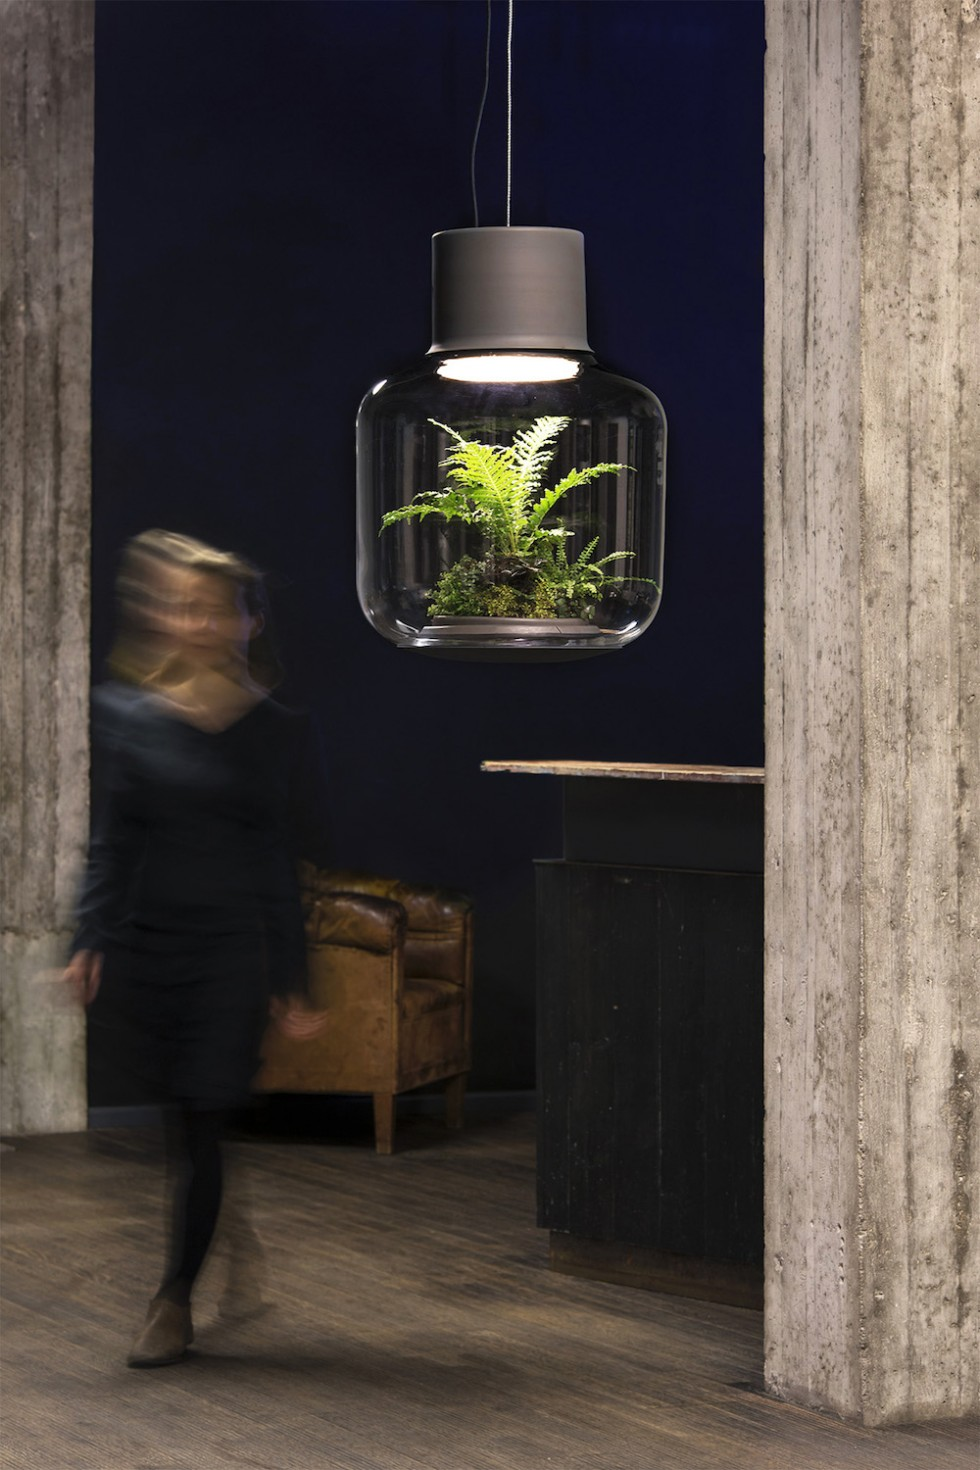 Find Terrarium Lamps by Nui Studio3 Nui Studio Find Terrarium Lamps by Nui Studio Find Terrarium Lamps by Nui Studio3 e1460363424326